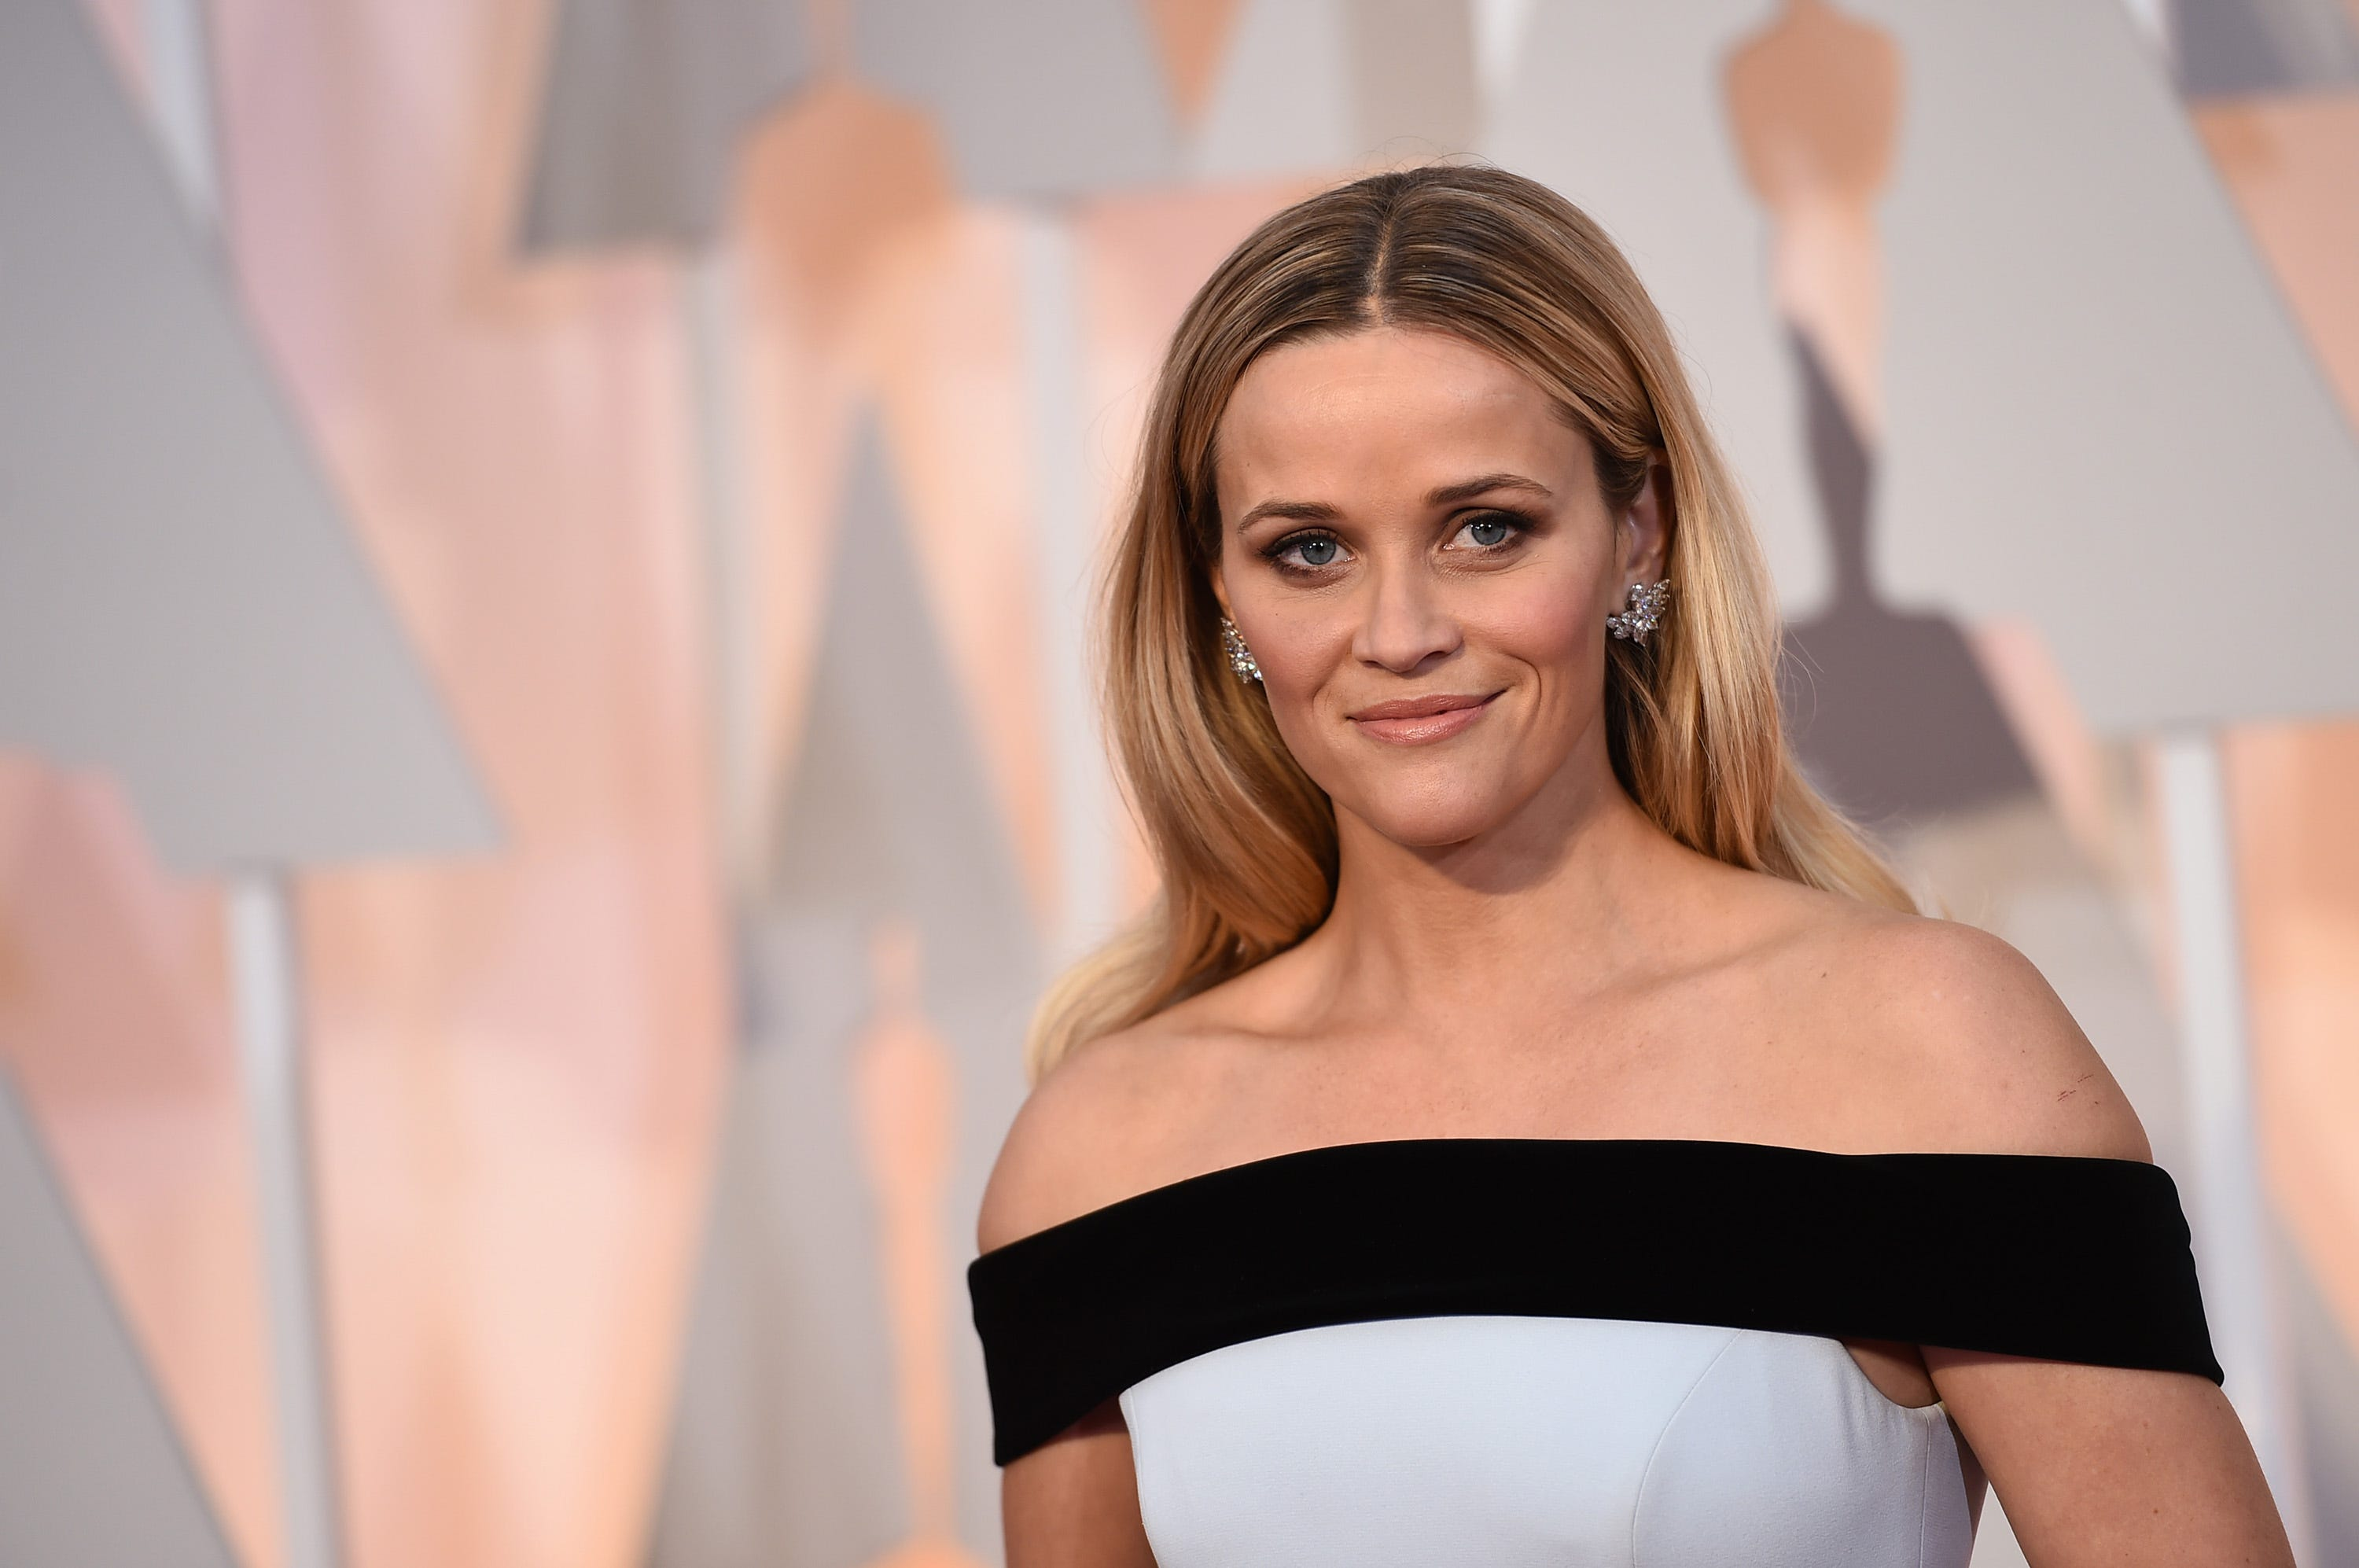 ICloud Reese Witherspoon nudes (87 photo), Pussy, Paparazzi, Twitter, cleavage 2006